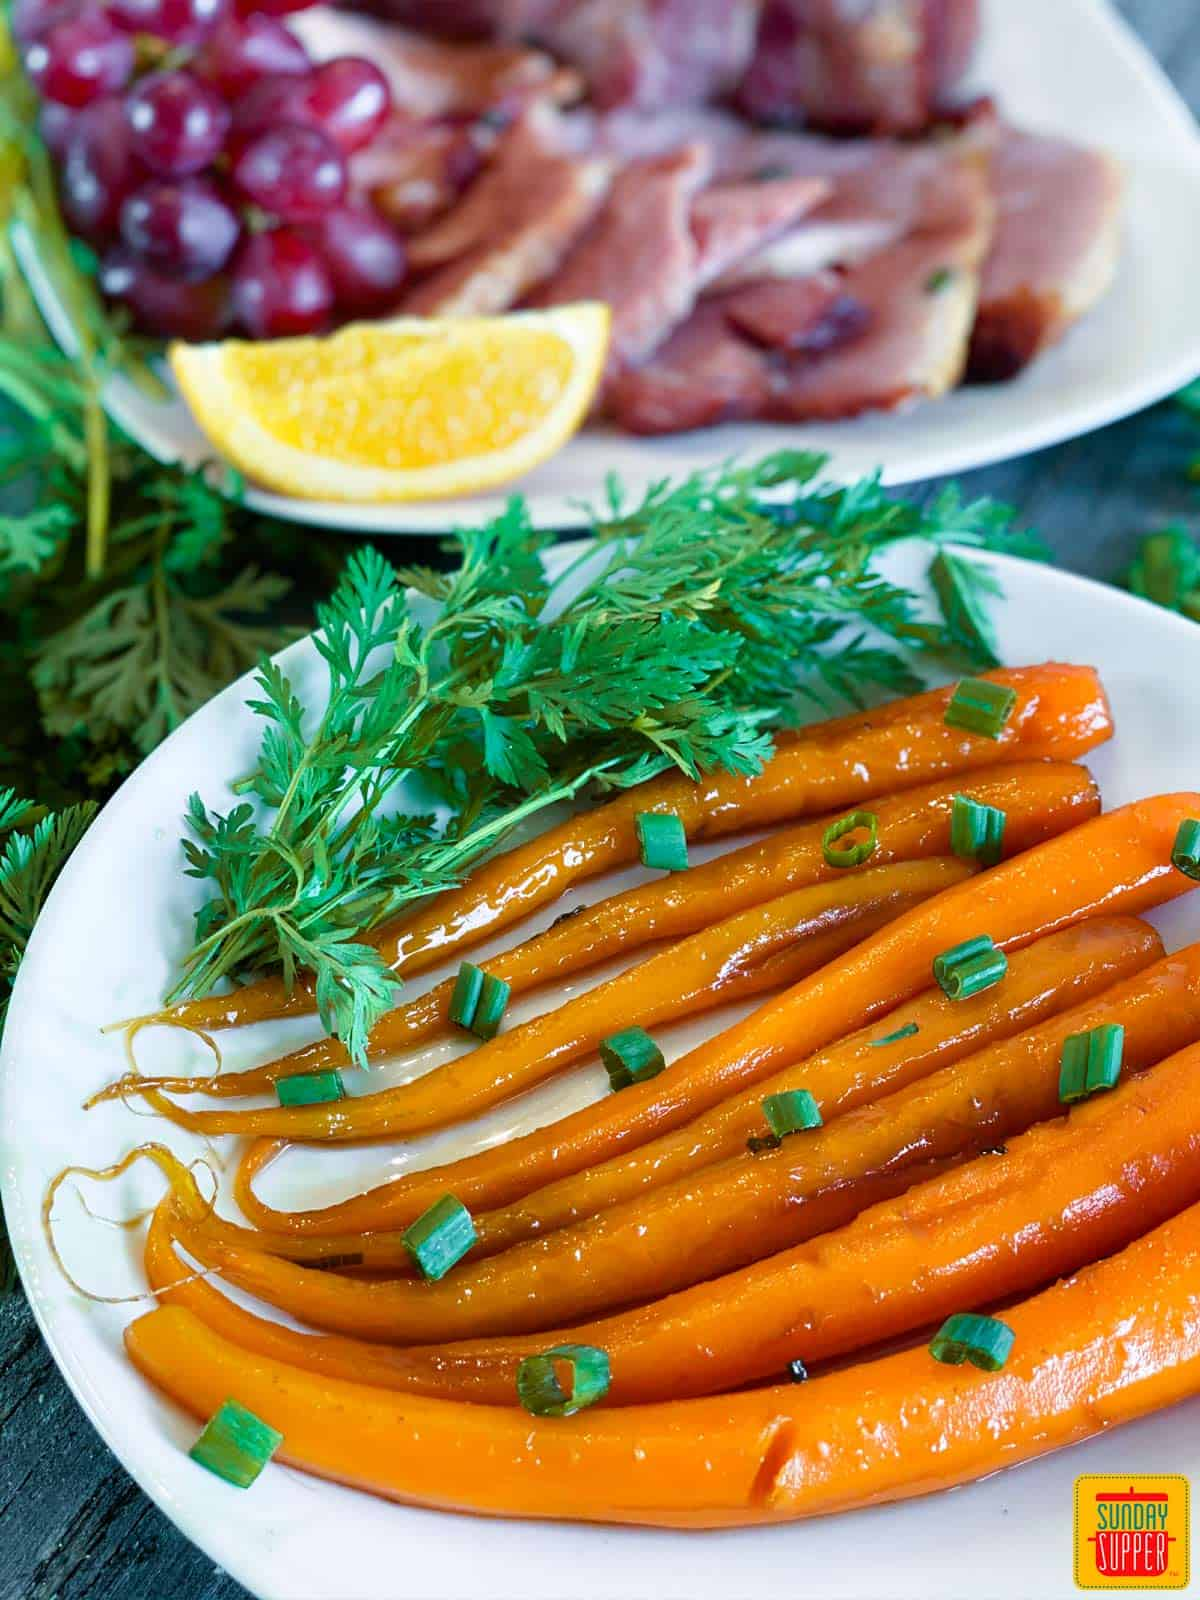 Candied carrots close up on a white plate in front of ham slices and citrus on a platter